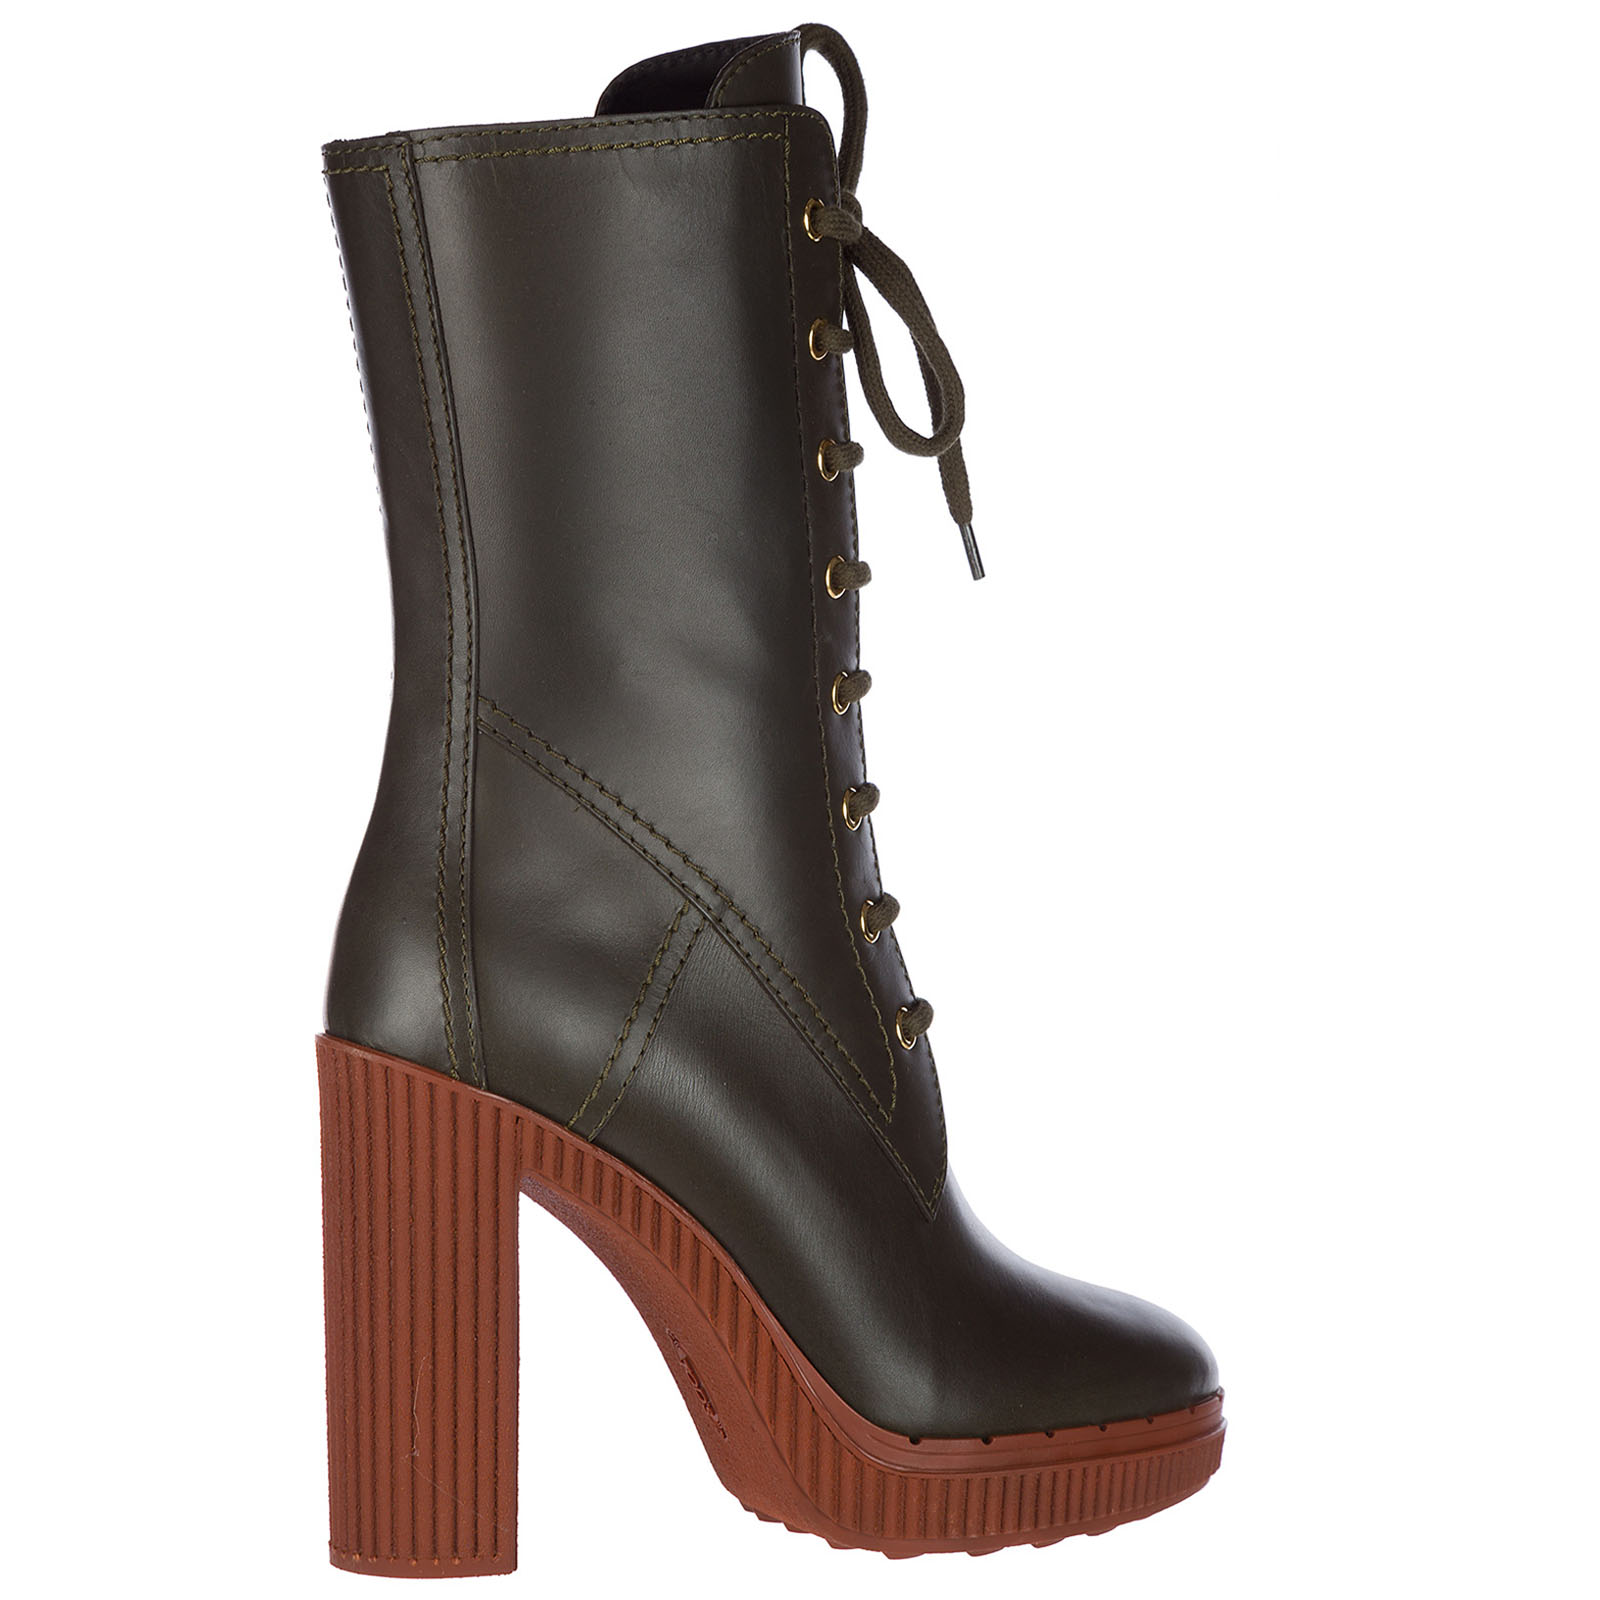 Women's leather heel ankle boots booties